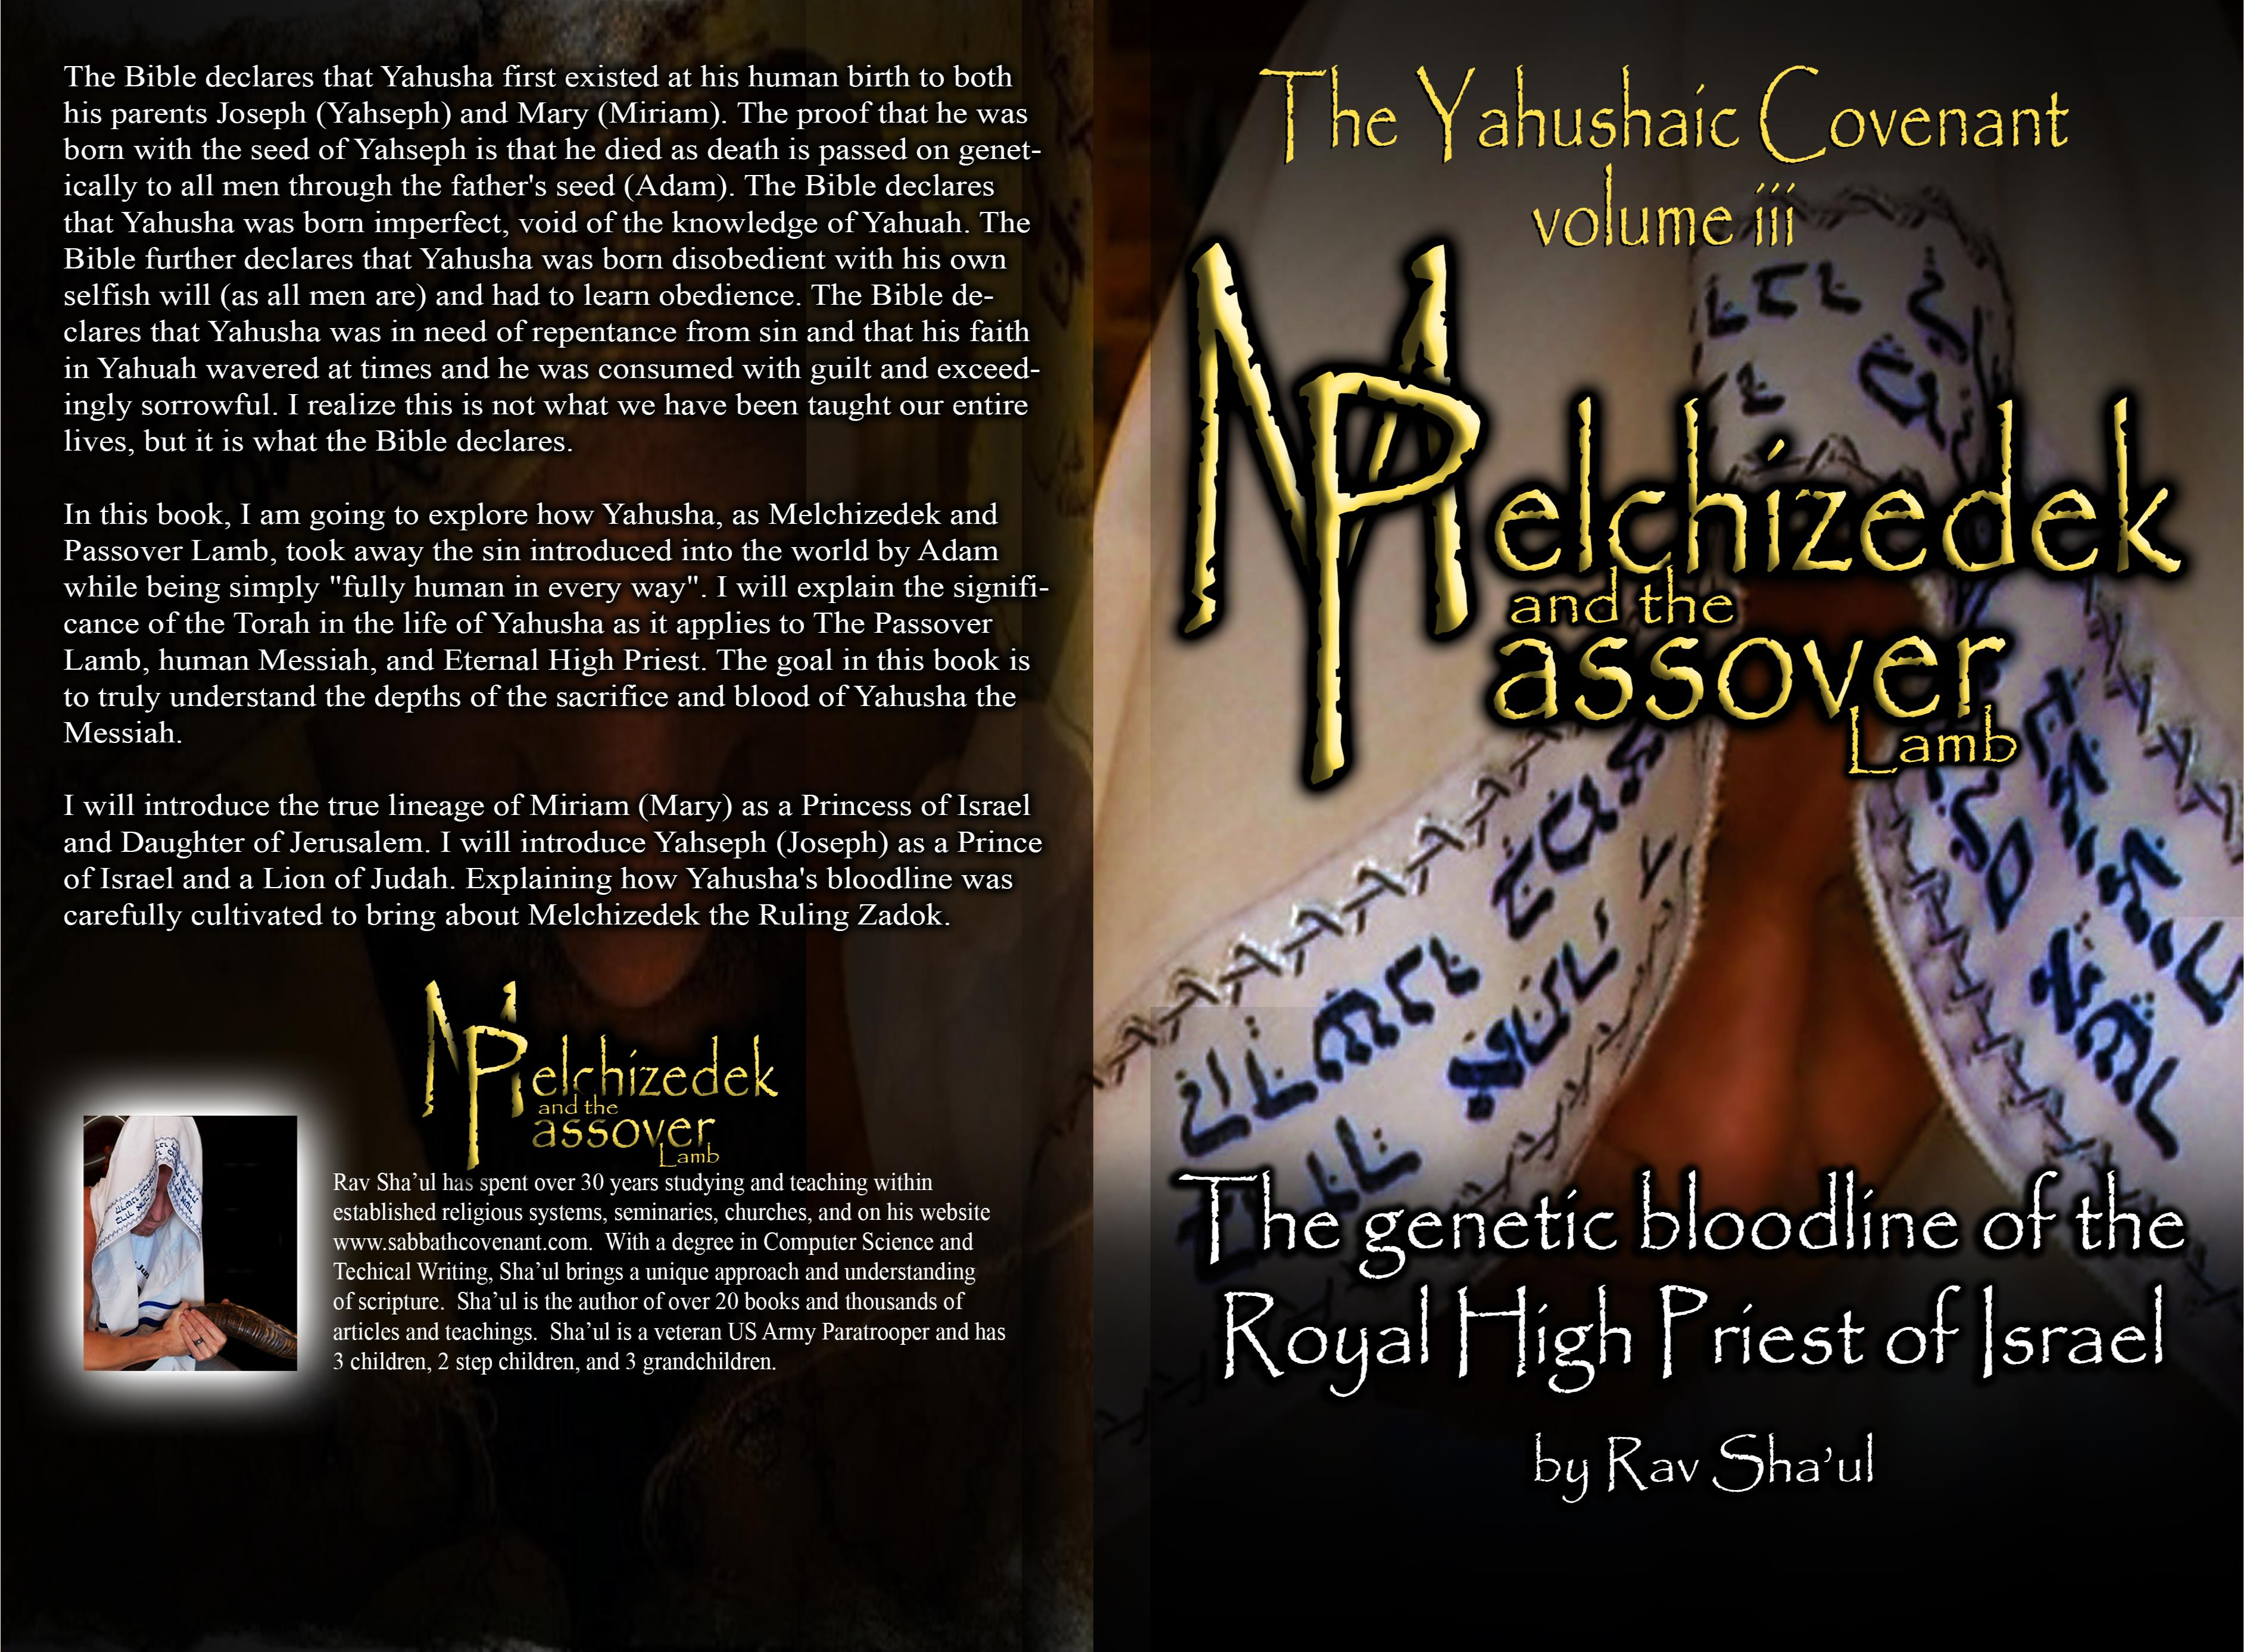 Melchizedek and the Passover Lamb cover image